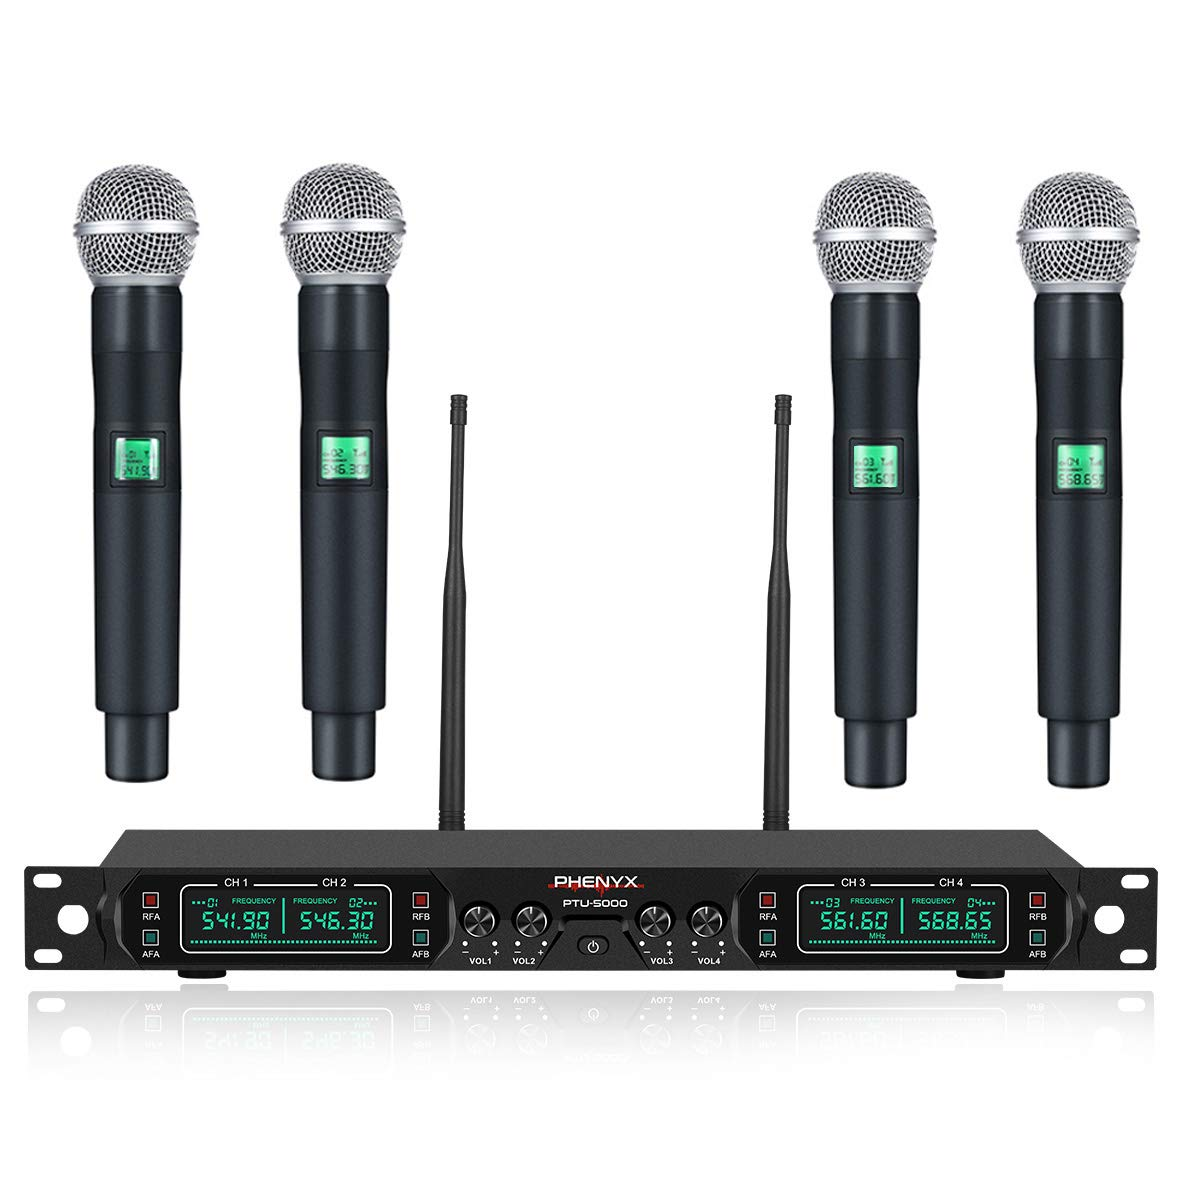 Top 8 Best Wireless Microphone For Tour Guide In Car - Buyer's Guide 4